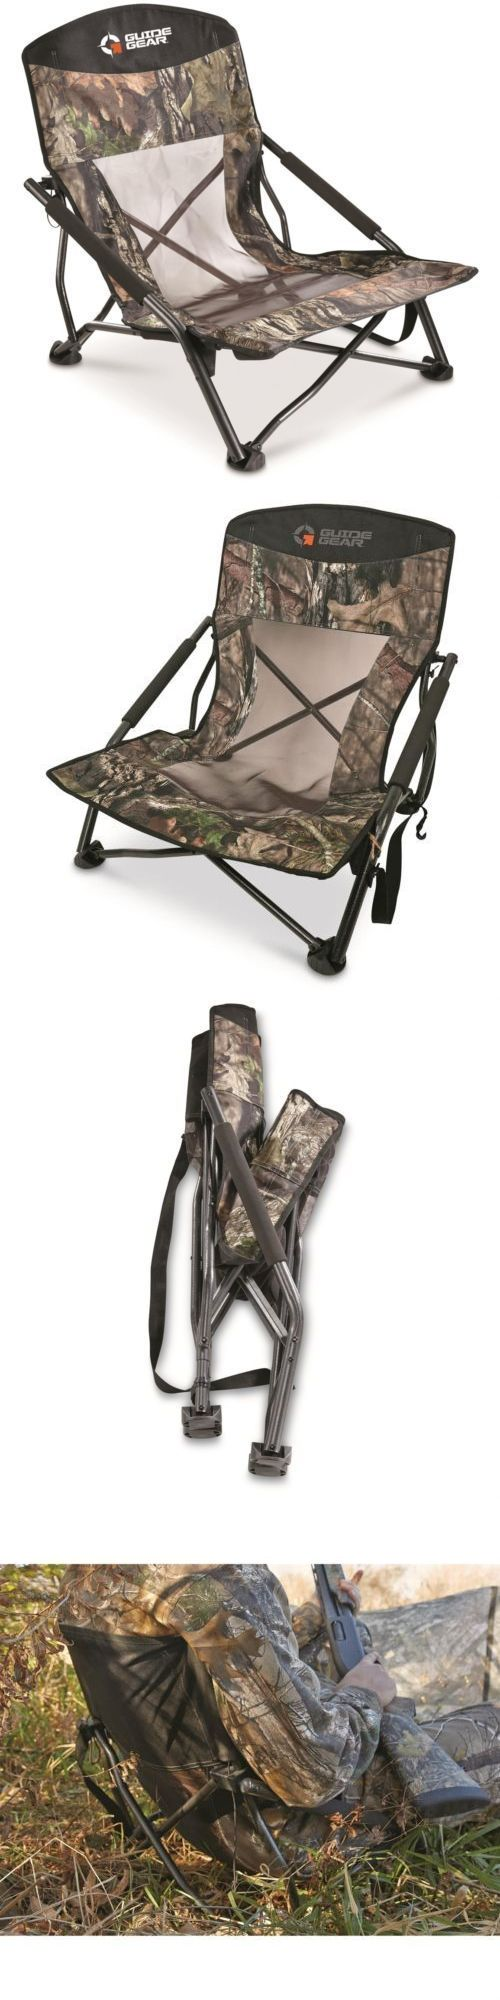 Seats and Chairs 52507: Hunting Blind Gear Camo Deluxe Turkey Gobbler Collapsible Game Chair 300 Lb Hunt -> BUY IT NOW ONLY: $44.99 on eBay!